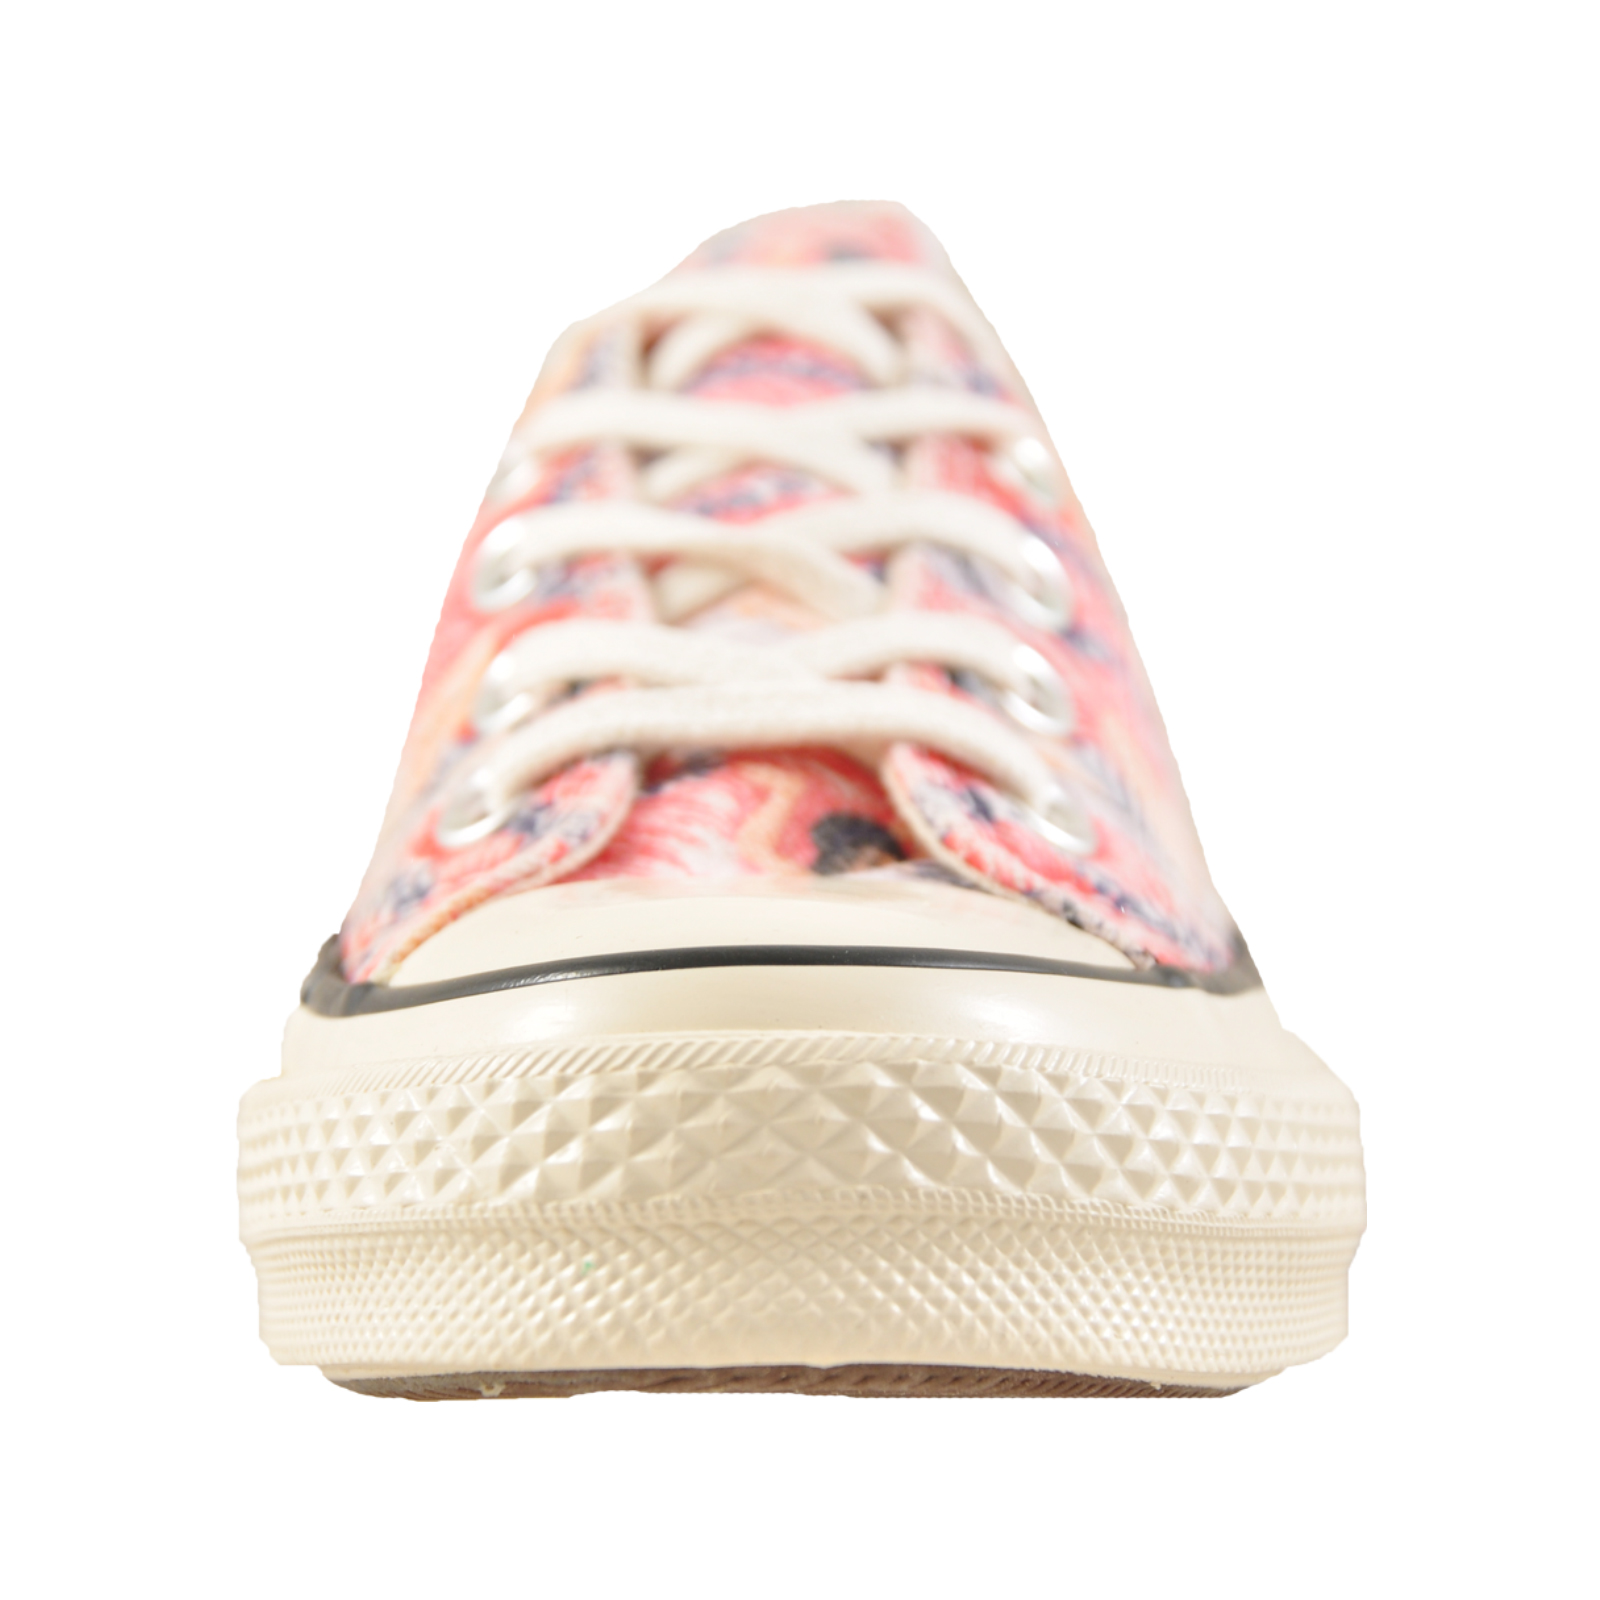 on sale fcd81 49ea1 Converse Chuck Taylor All Star 70 Ox Casino Canvas Women s Plimsols Trainers